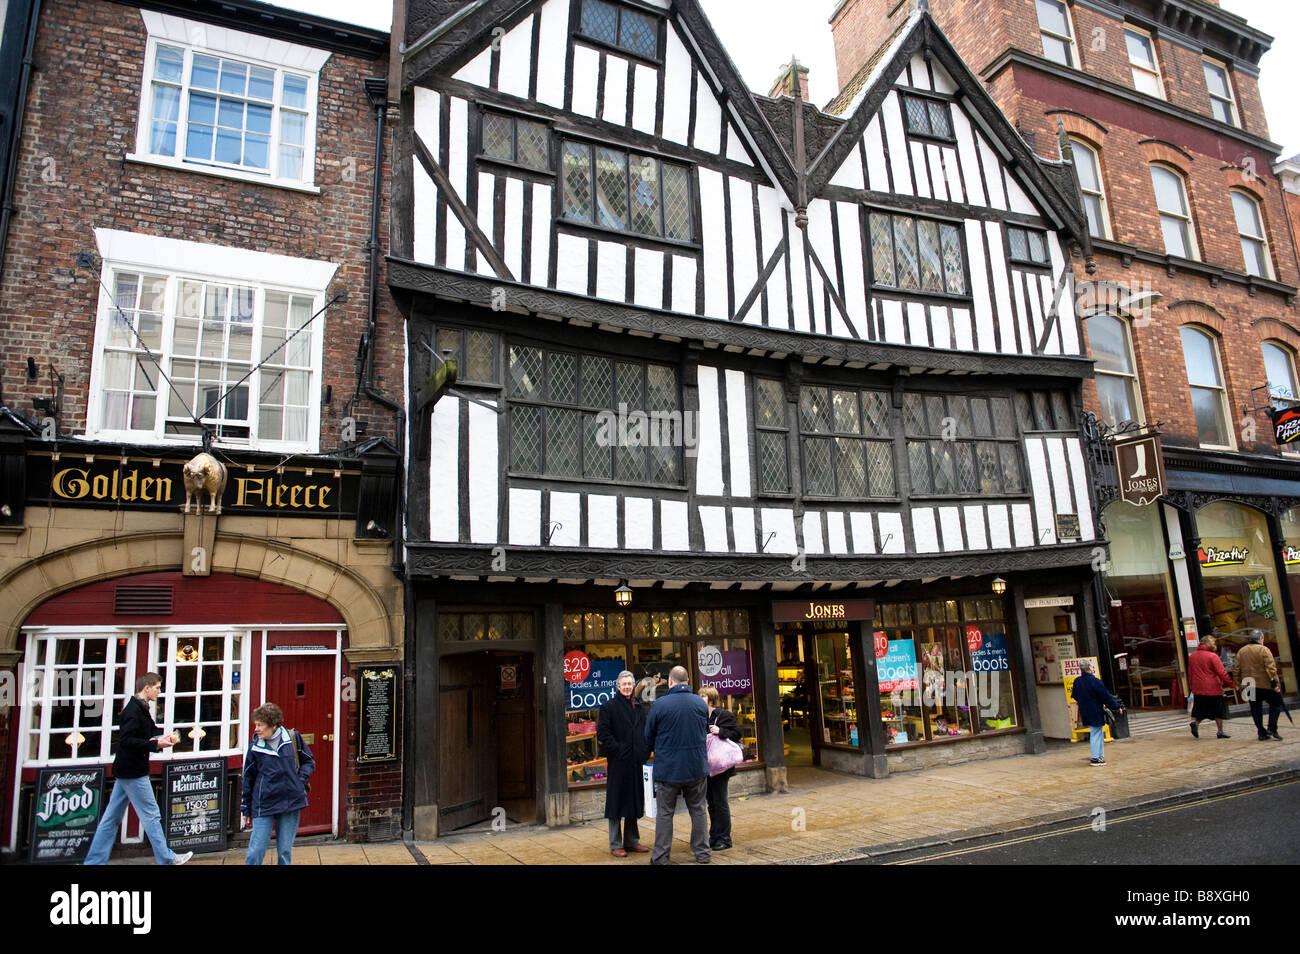 Shops in Pavement York FOR EDITORIAL USE ONLY - Stock Image